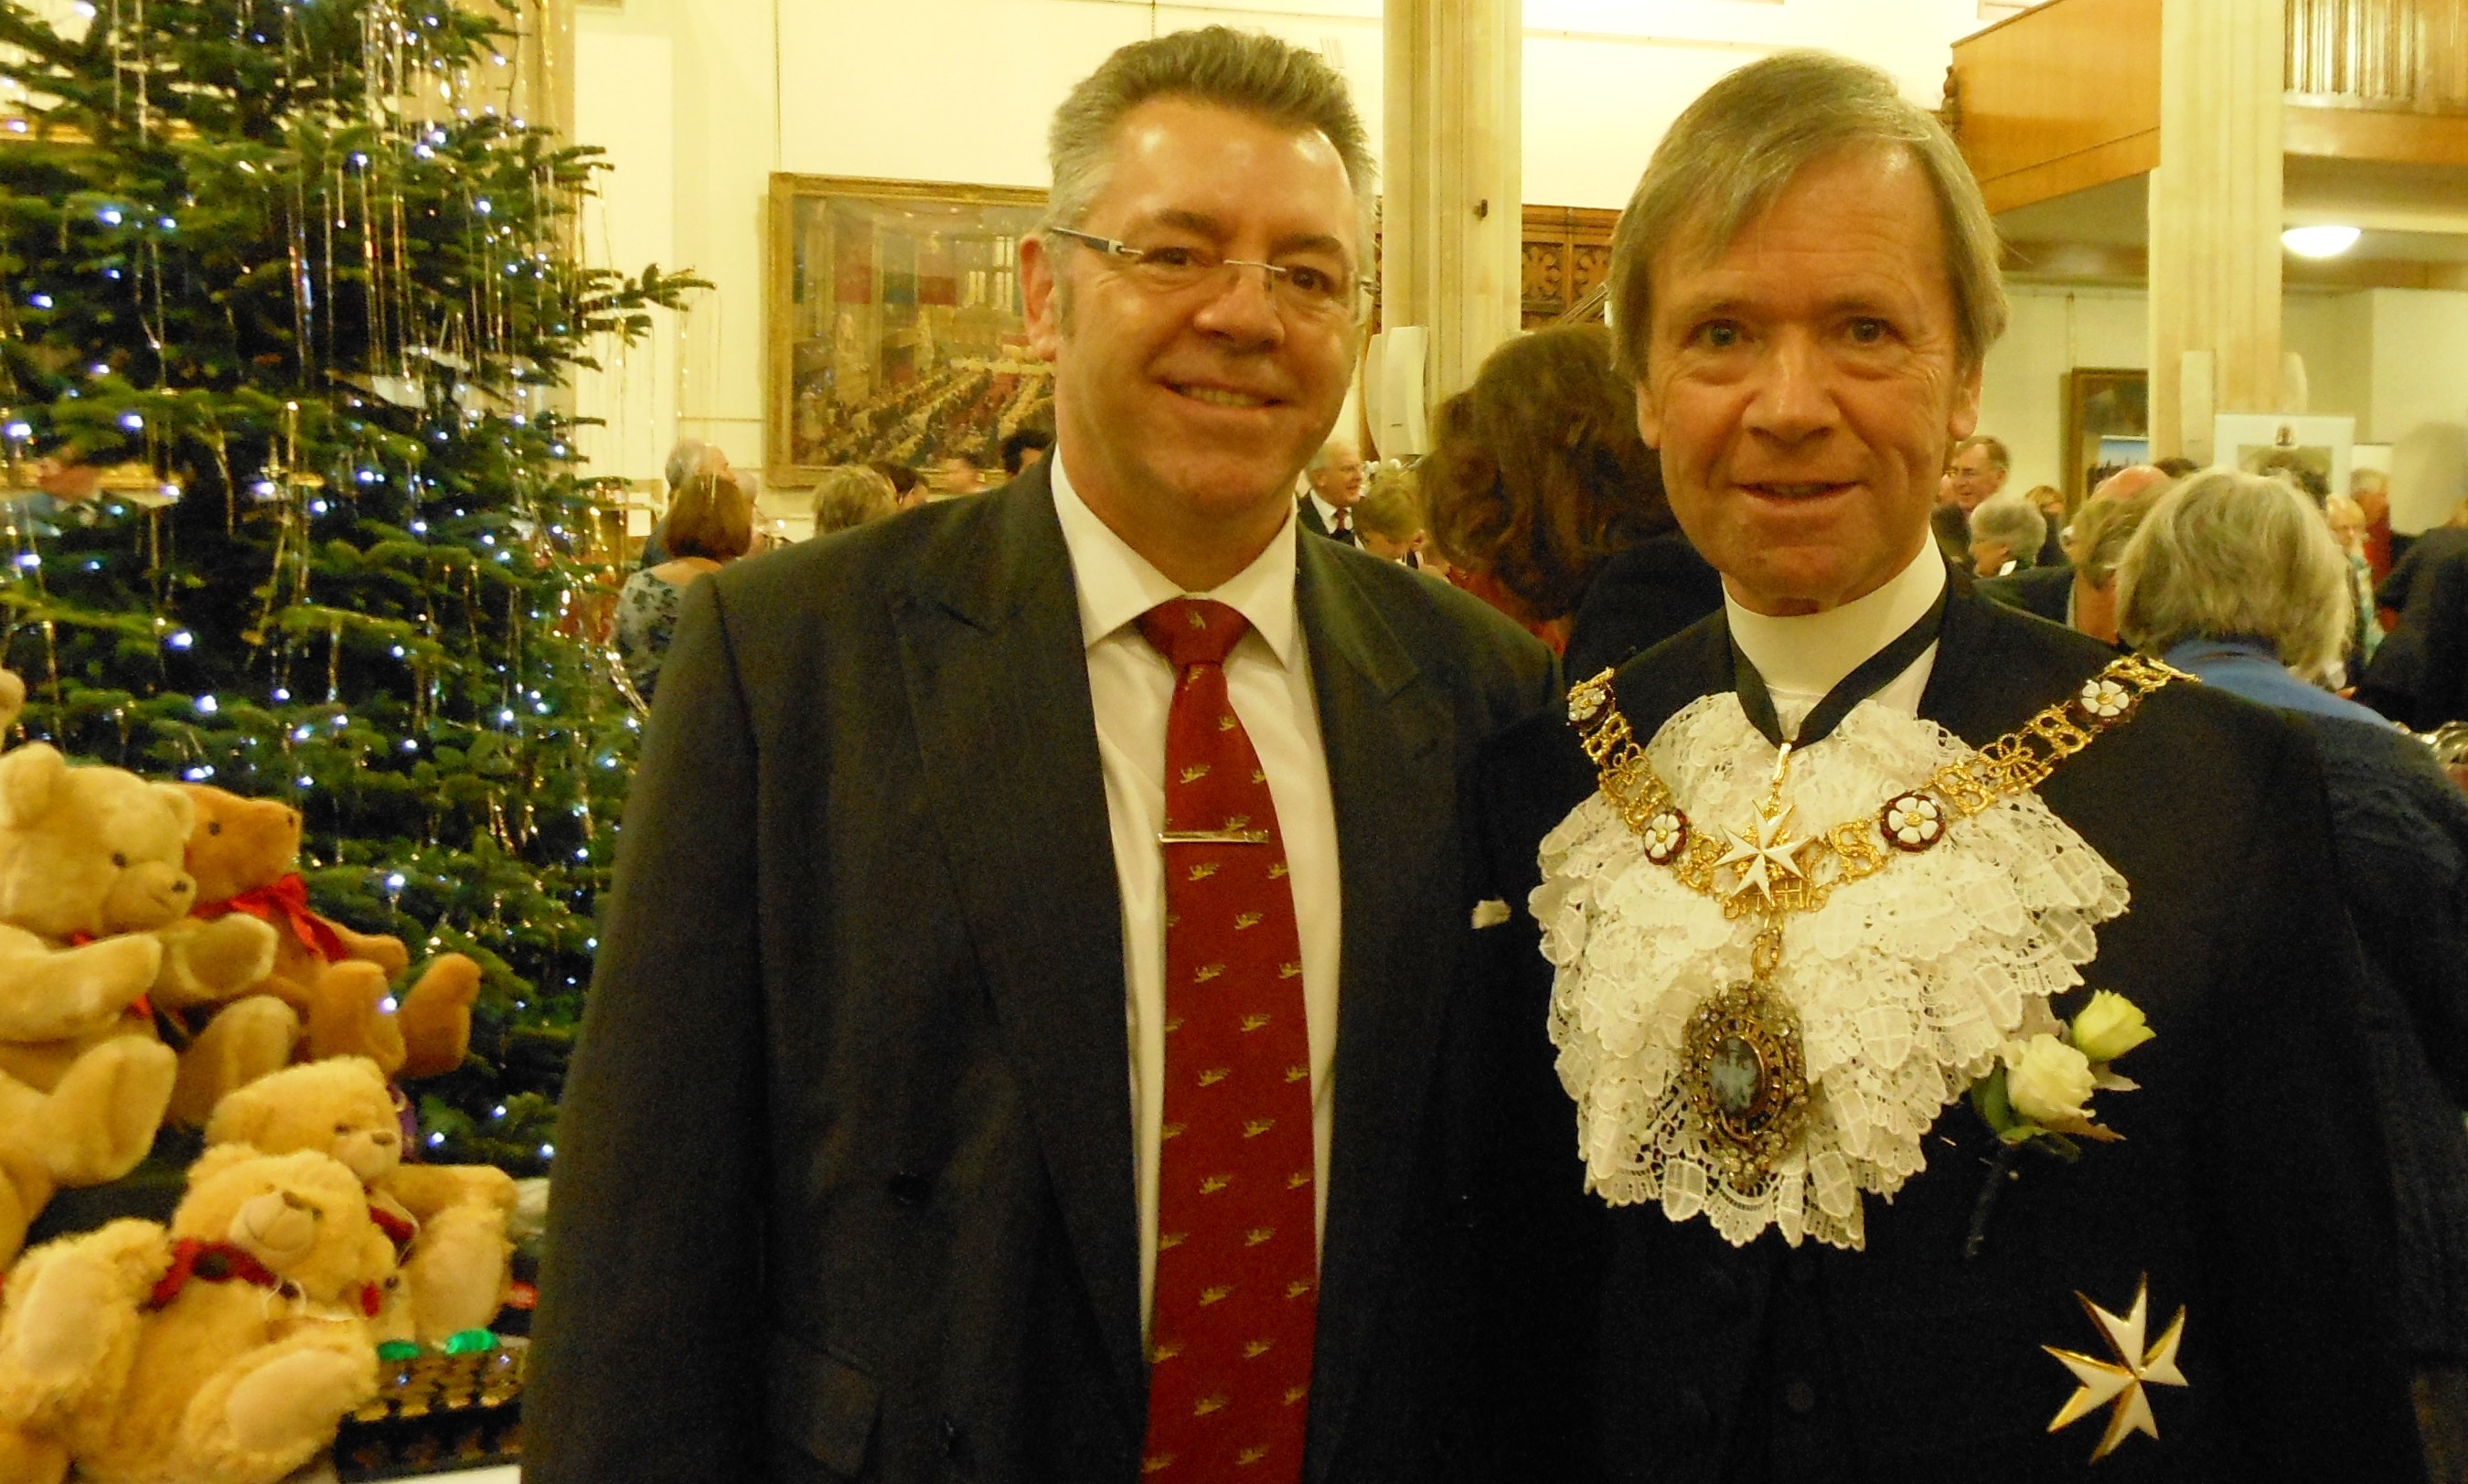 The Rt Hon the Lord Mayor Alderman the Lord Mountevans and David Stringer-Lamarre